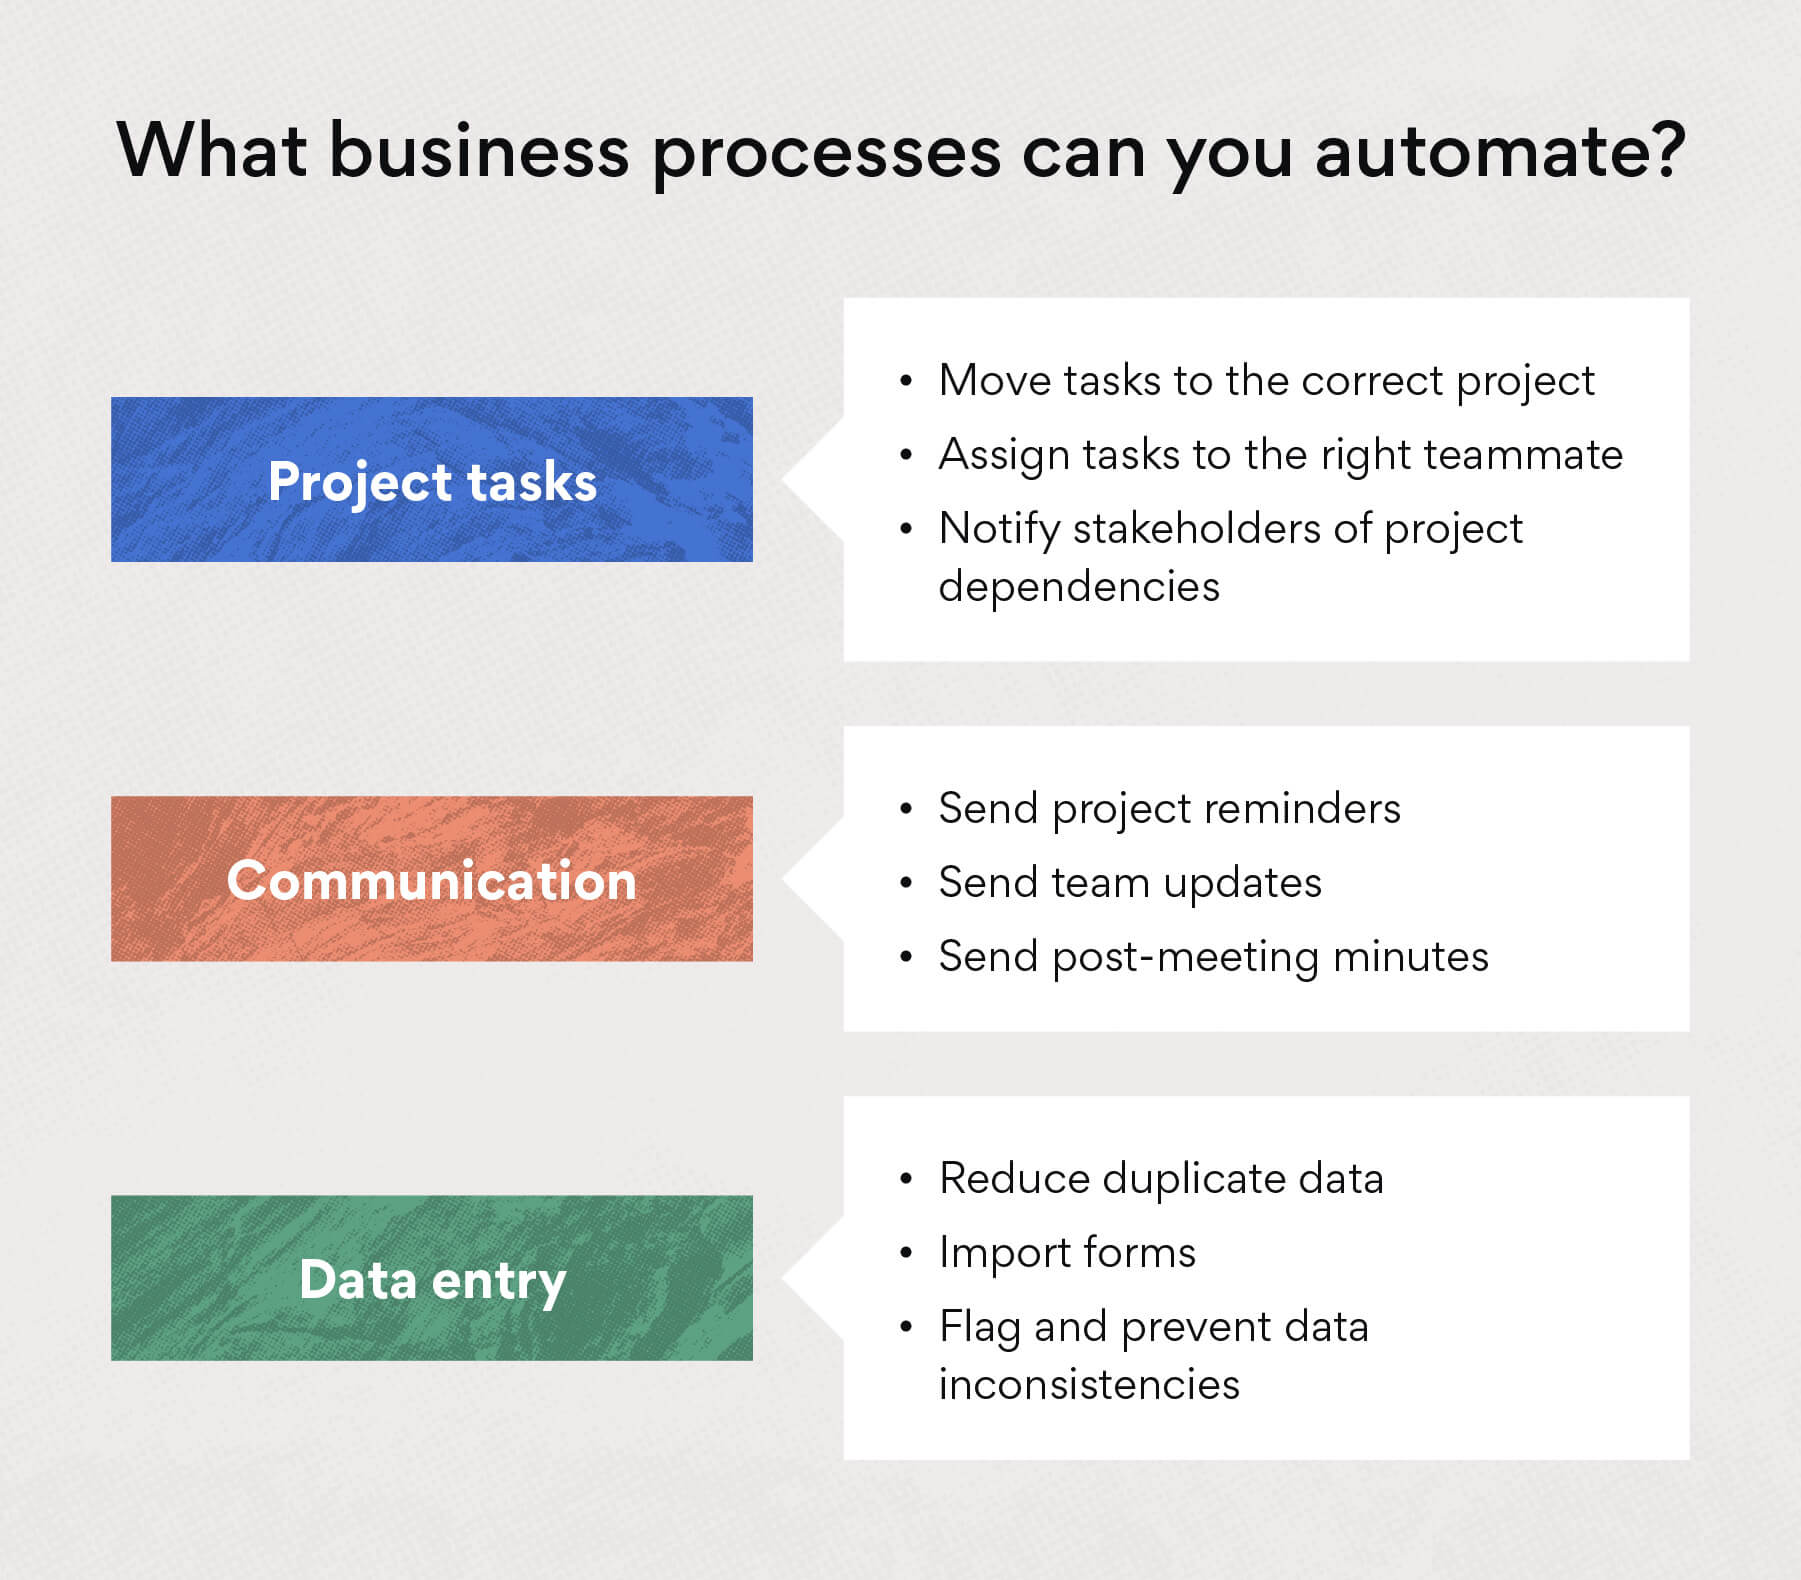 What business processes can you automate?